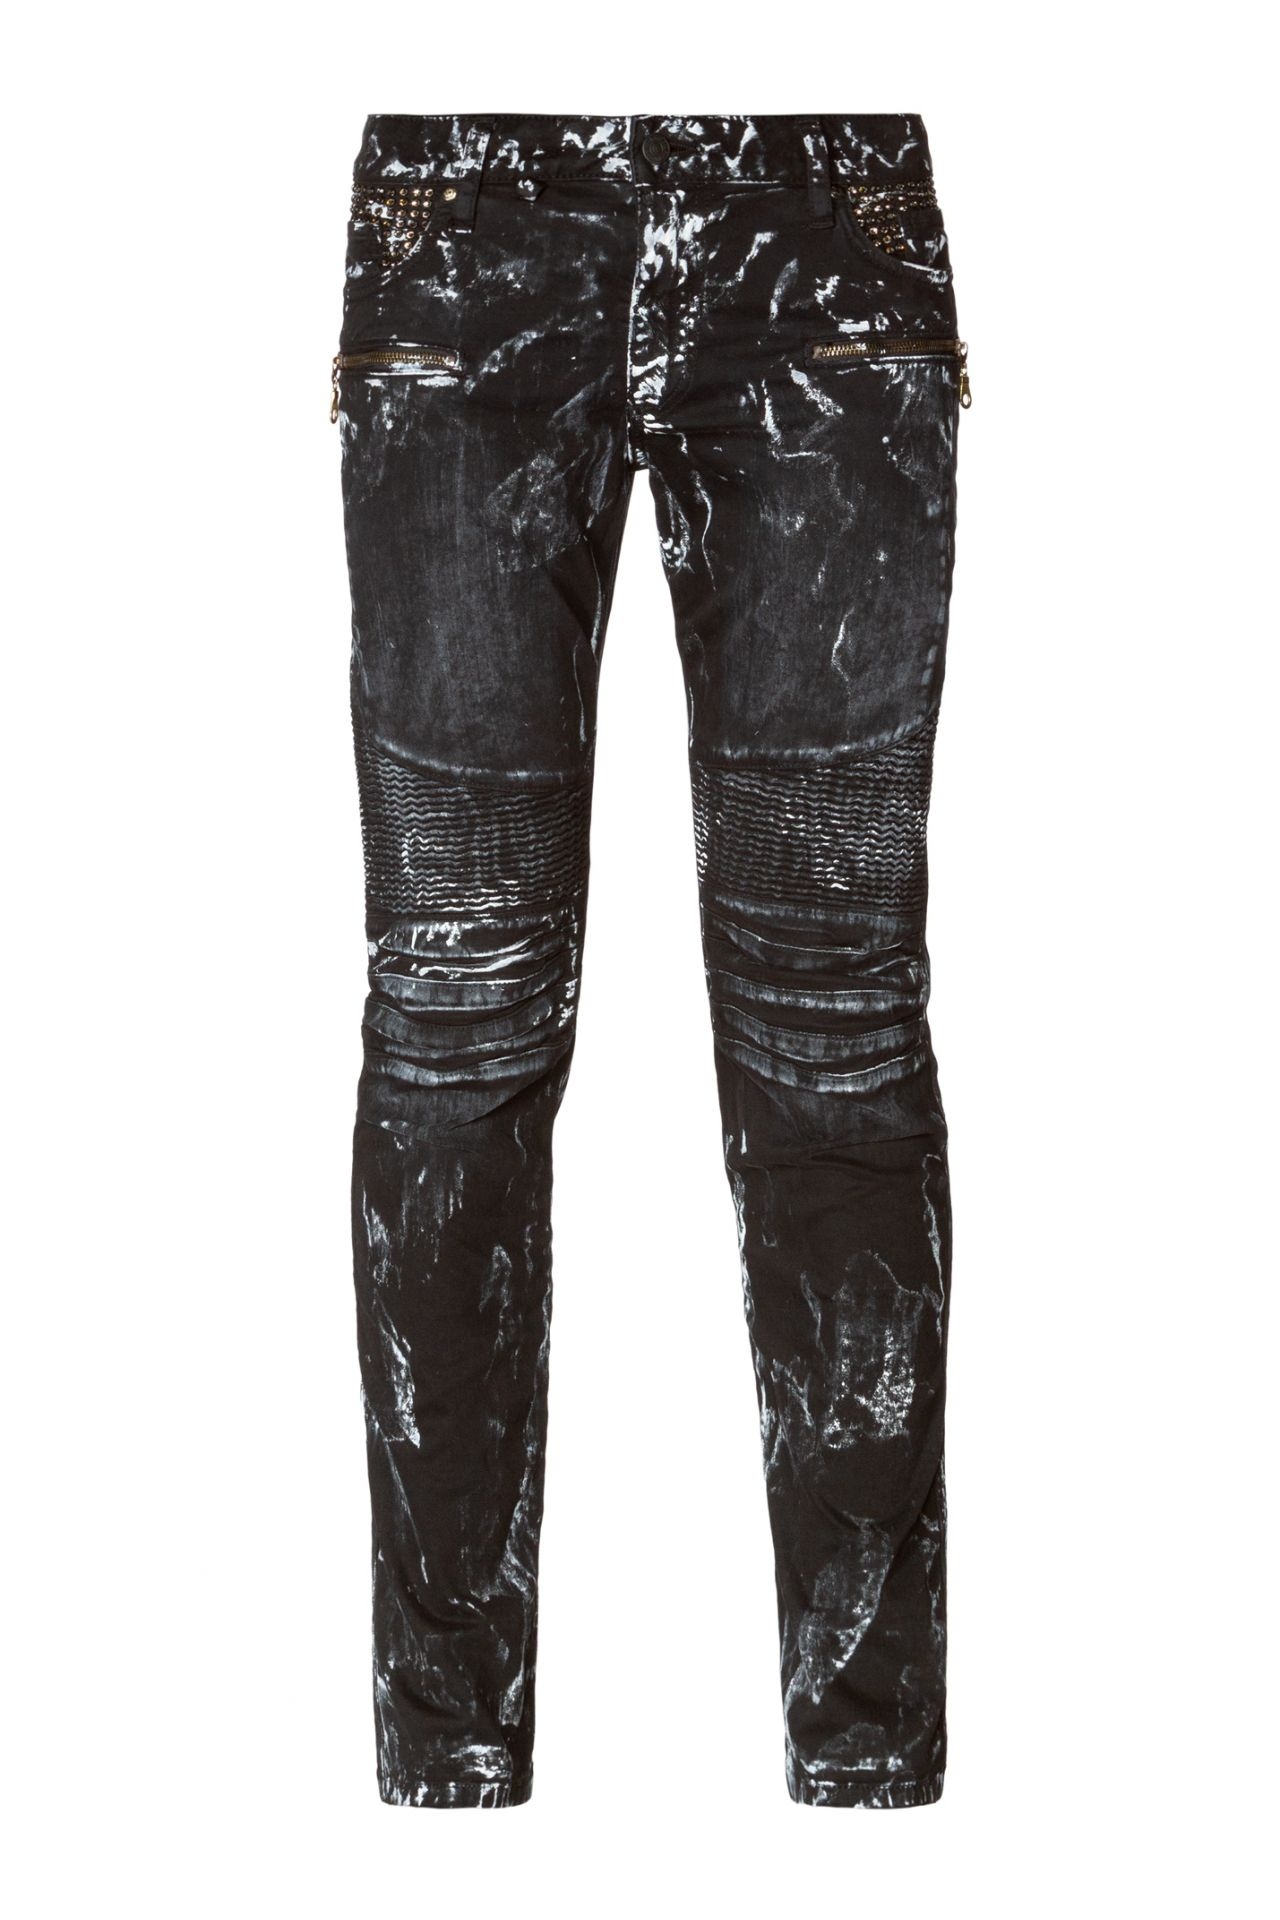 BIKER JEANS IN BLACK ICE WITH CRYSTALS